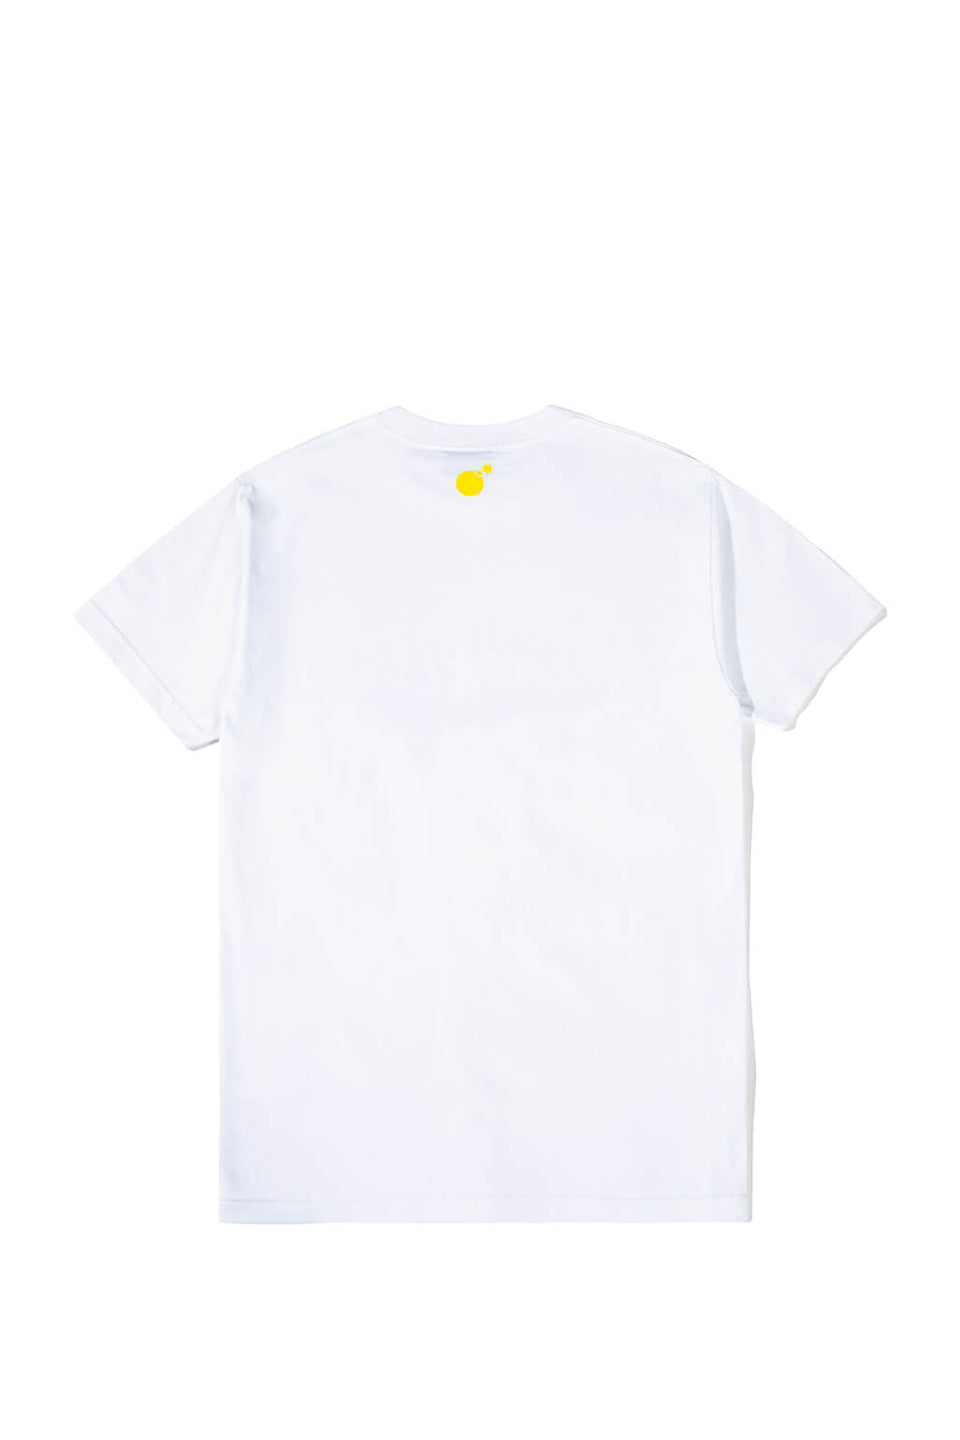 The Hundreds Beach Slant T-Shirt White